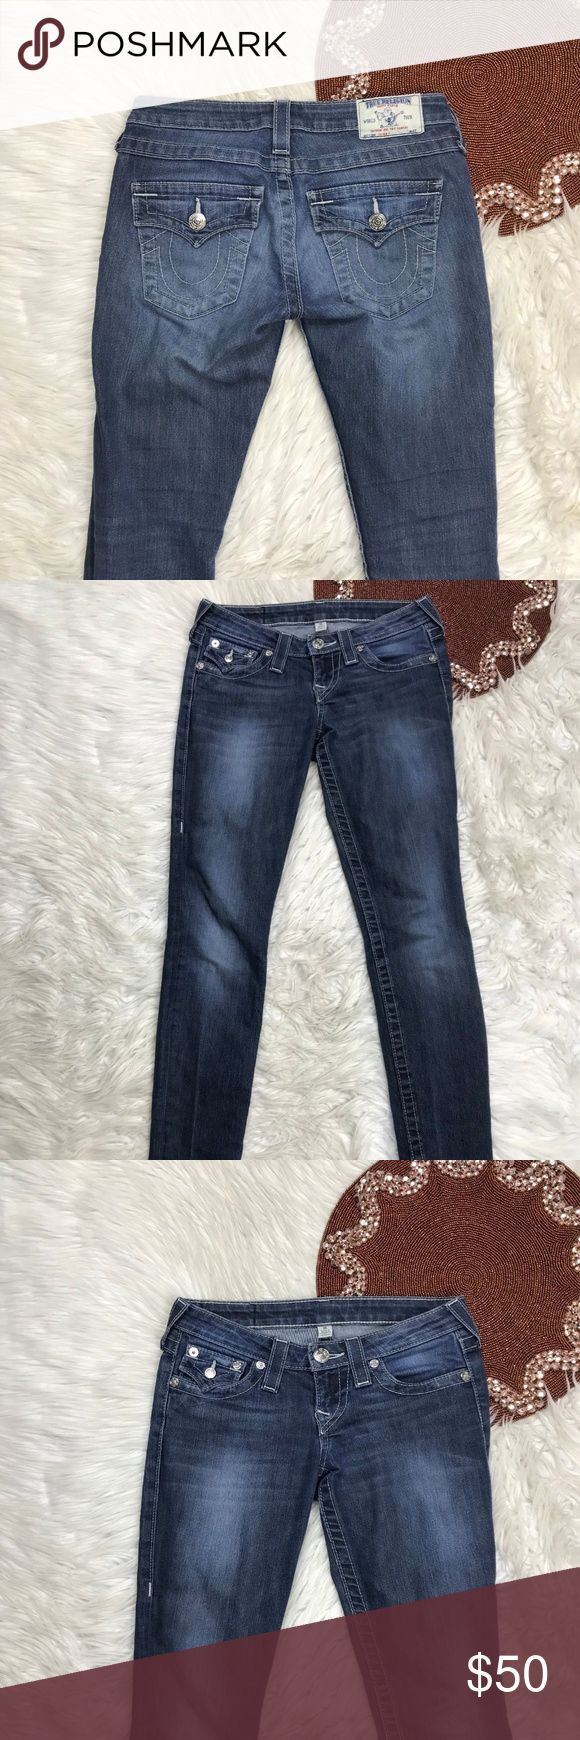 True Religion Skinny Women Jeans Sz 26 X 30 2-1 Pre Owned  * Color(s) may vary slightly from photos  * Refer to photos for detail, photos are considered part of the description True Religion Jeans Skinny